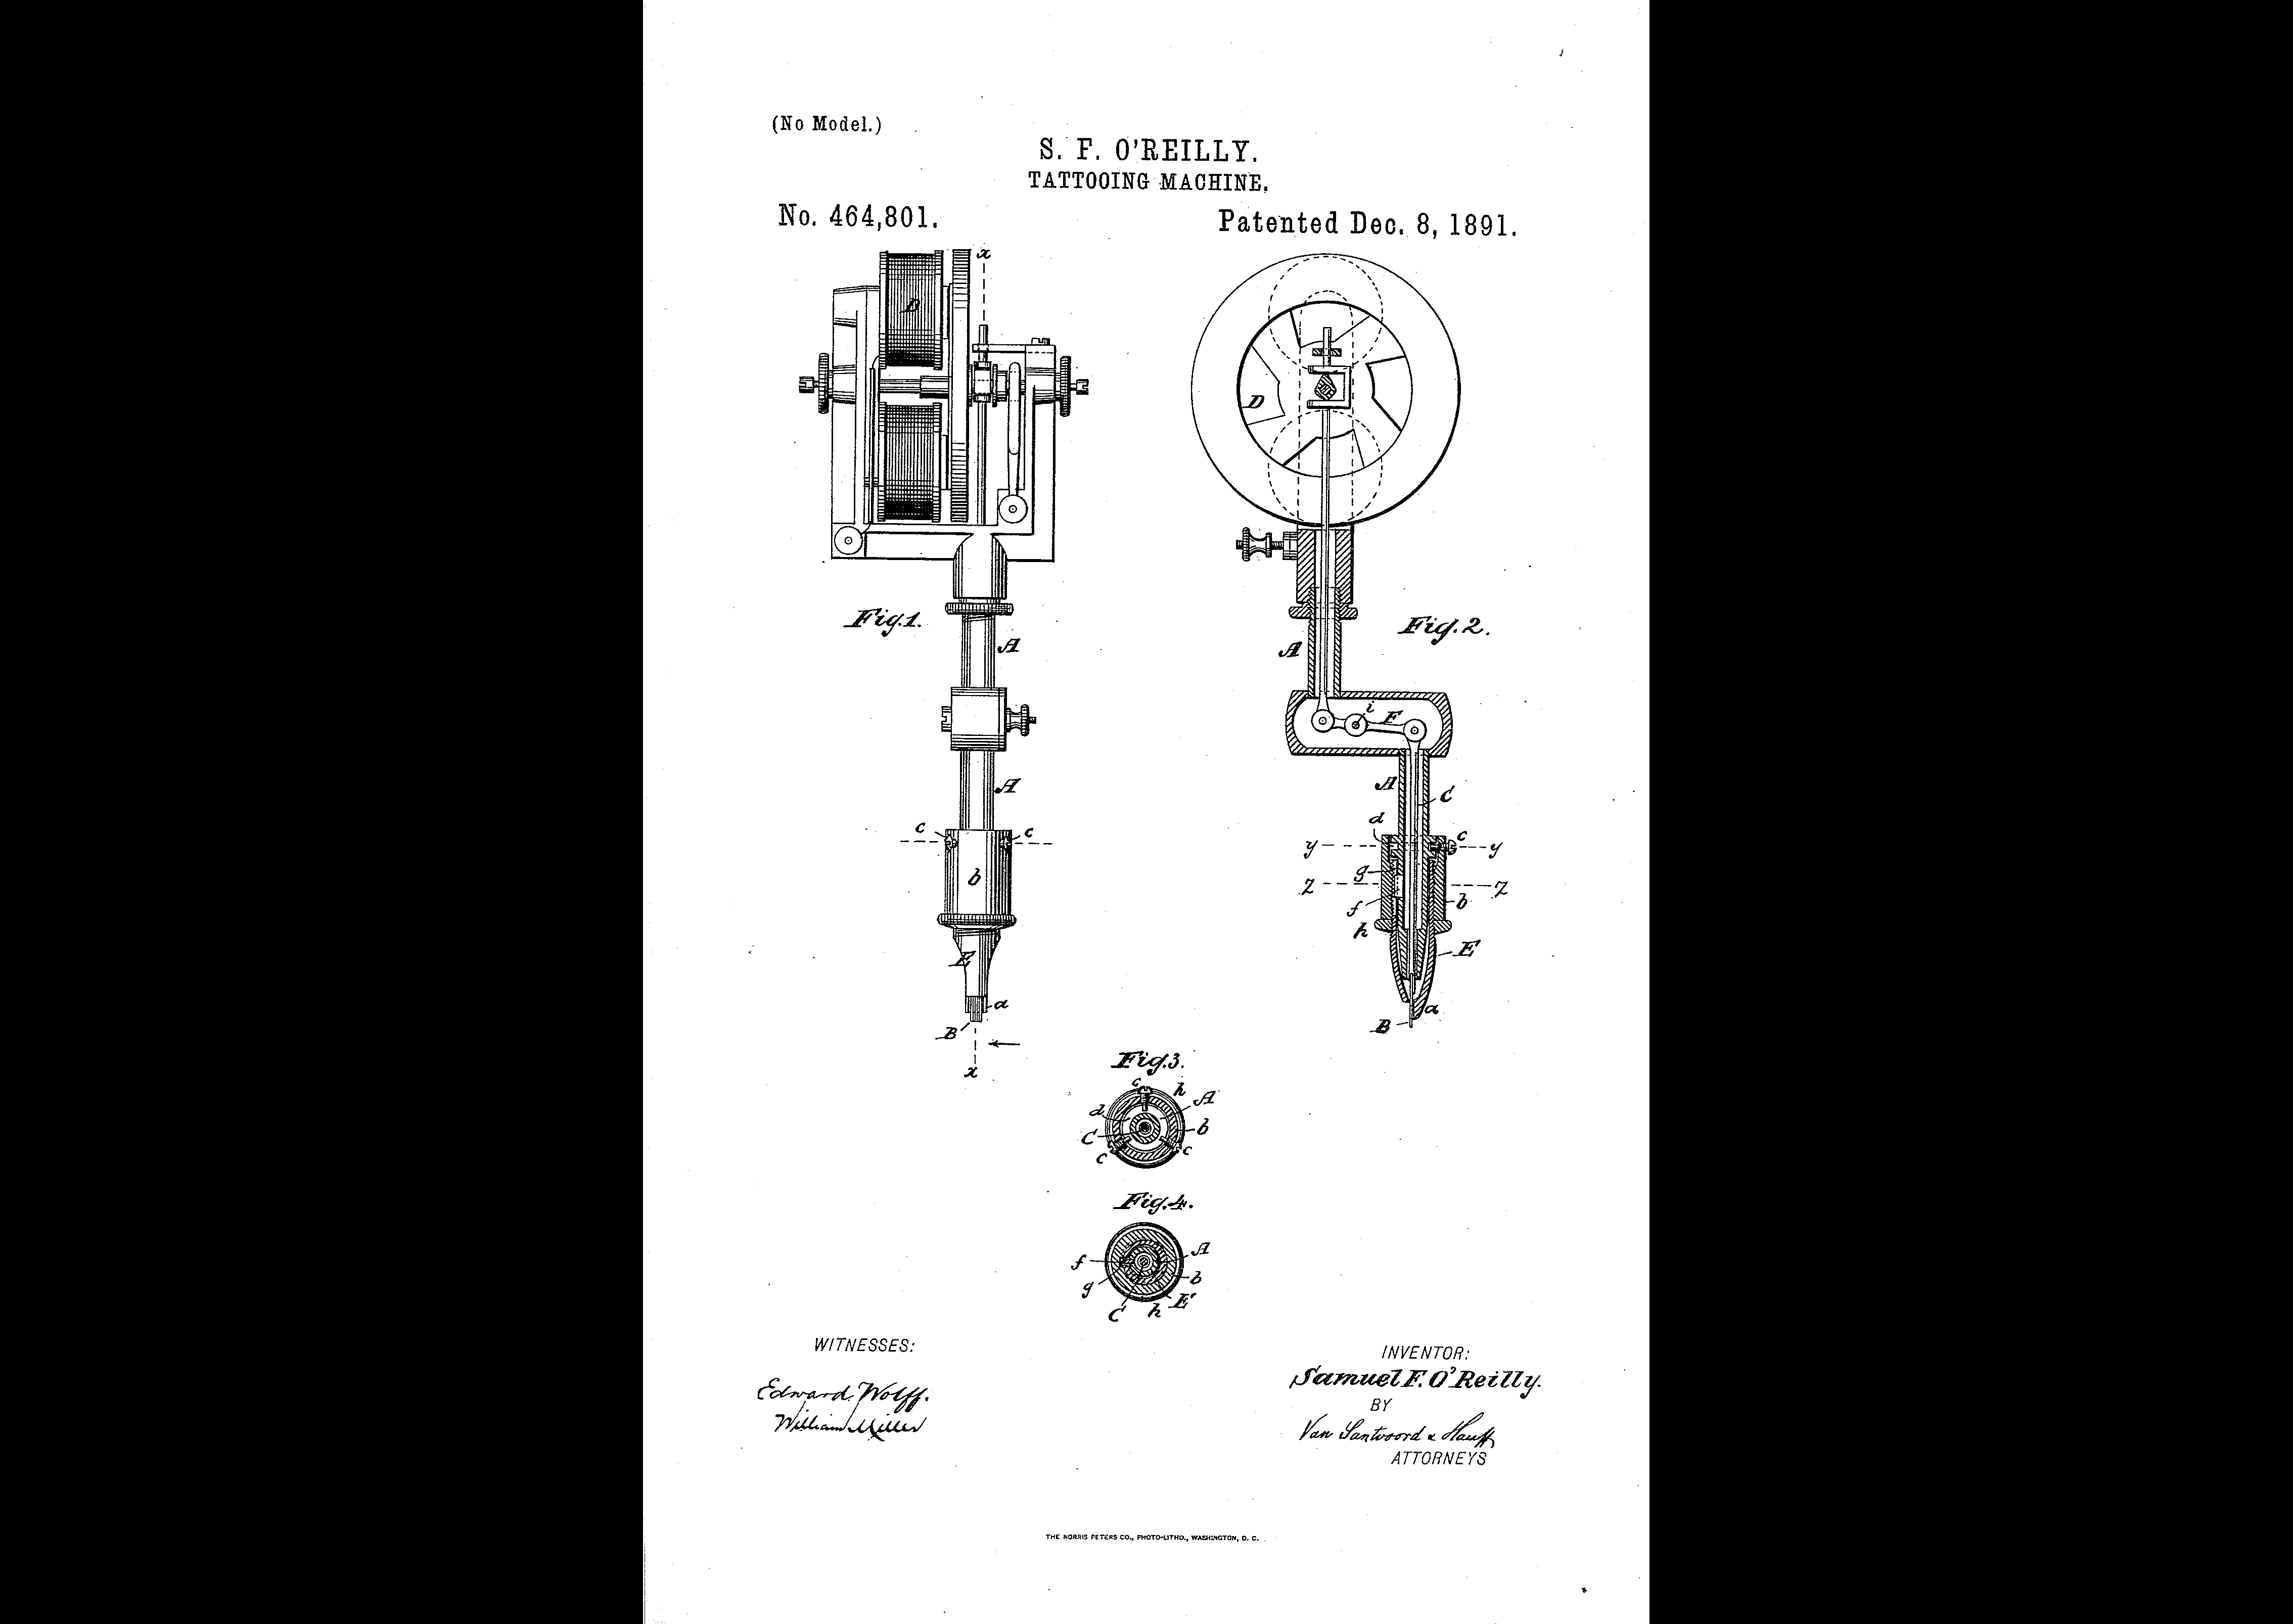 O'Reilly's Patent.